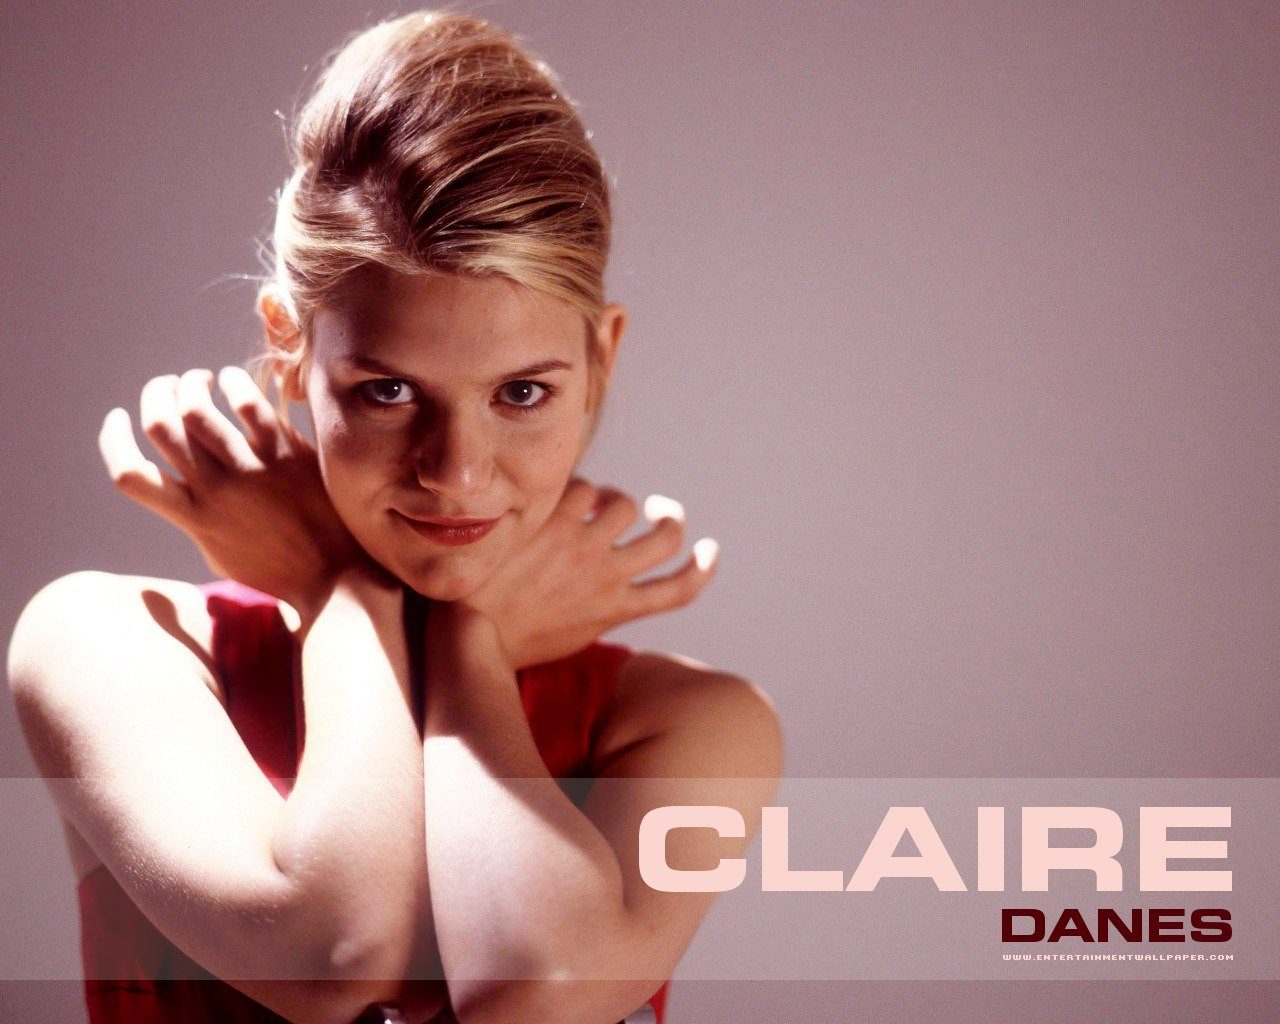 1280x1024 - Claire Danes Wallpapers 12